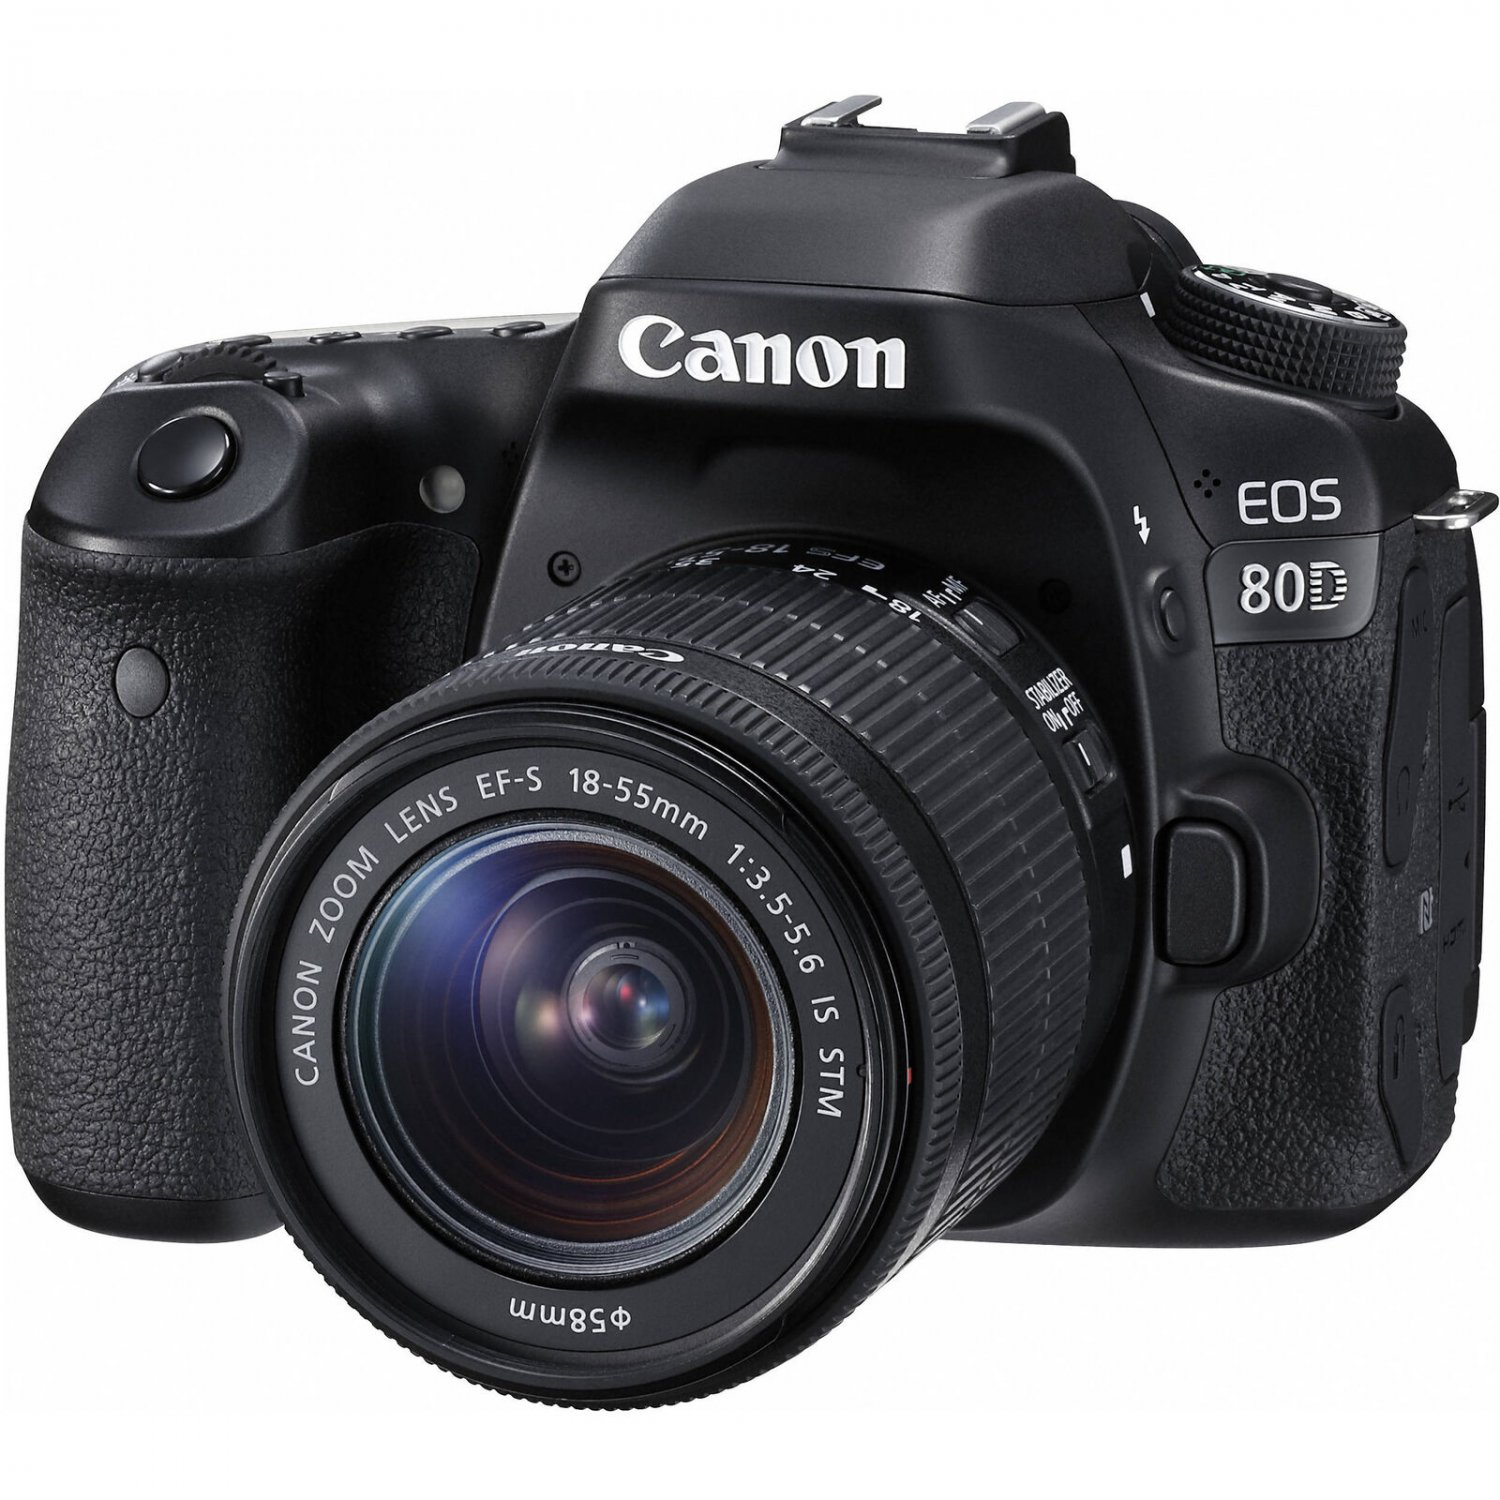 Canon EOS 80D 24.2MP Digital SLR Camera with 18-55mm Lens Built-In Wi-Fi & NFC